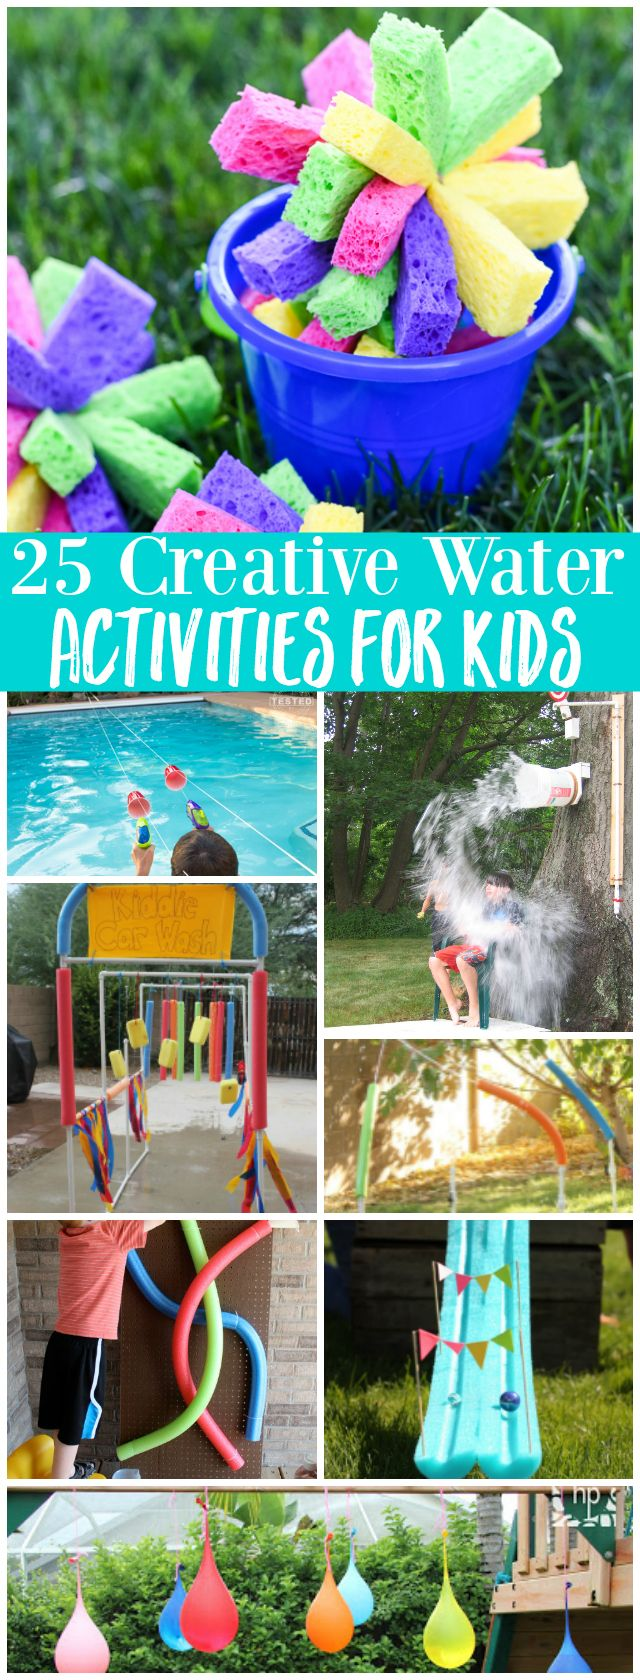 Water and ice activities summer camp at home with 12 weeks of easy - 25 Creative Water Activities And Games For Kids Fun Summer Boredom Buster Ideas